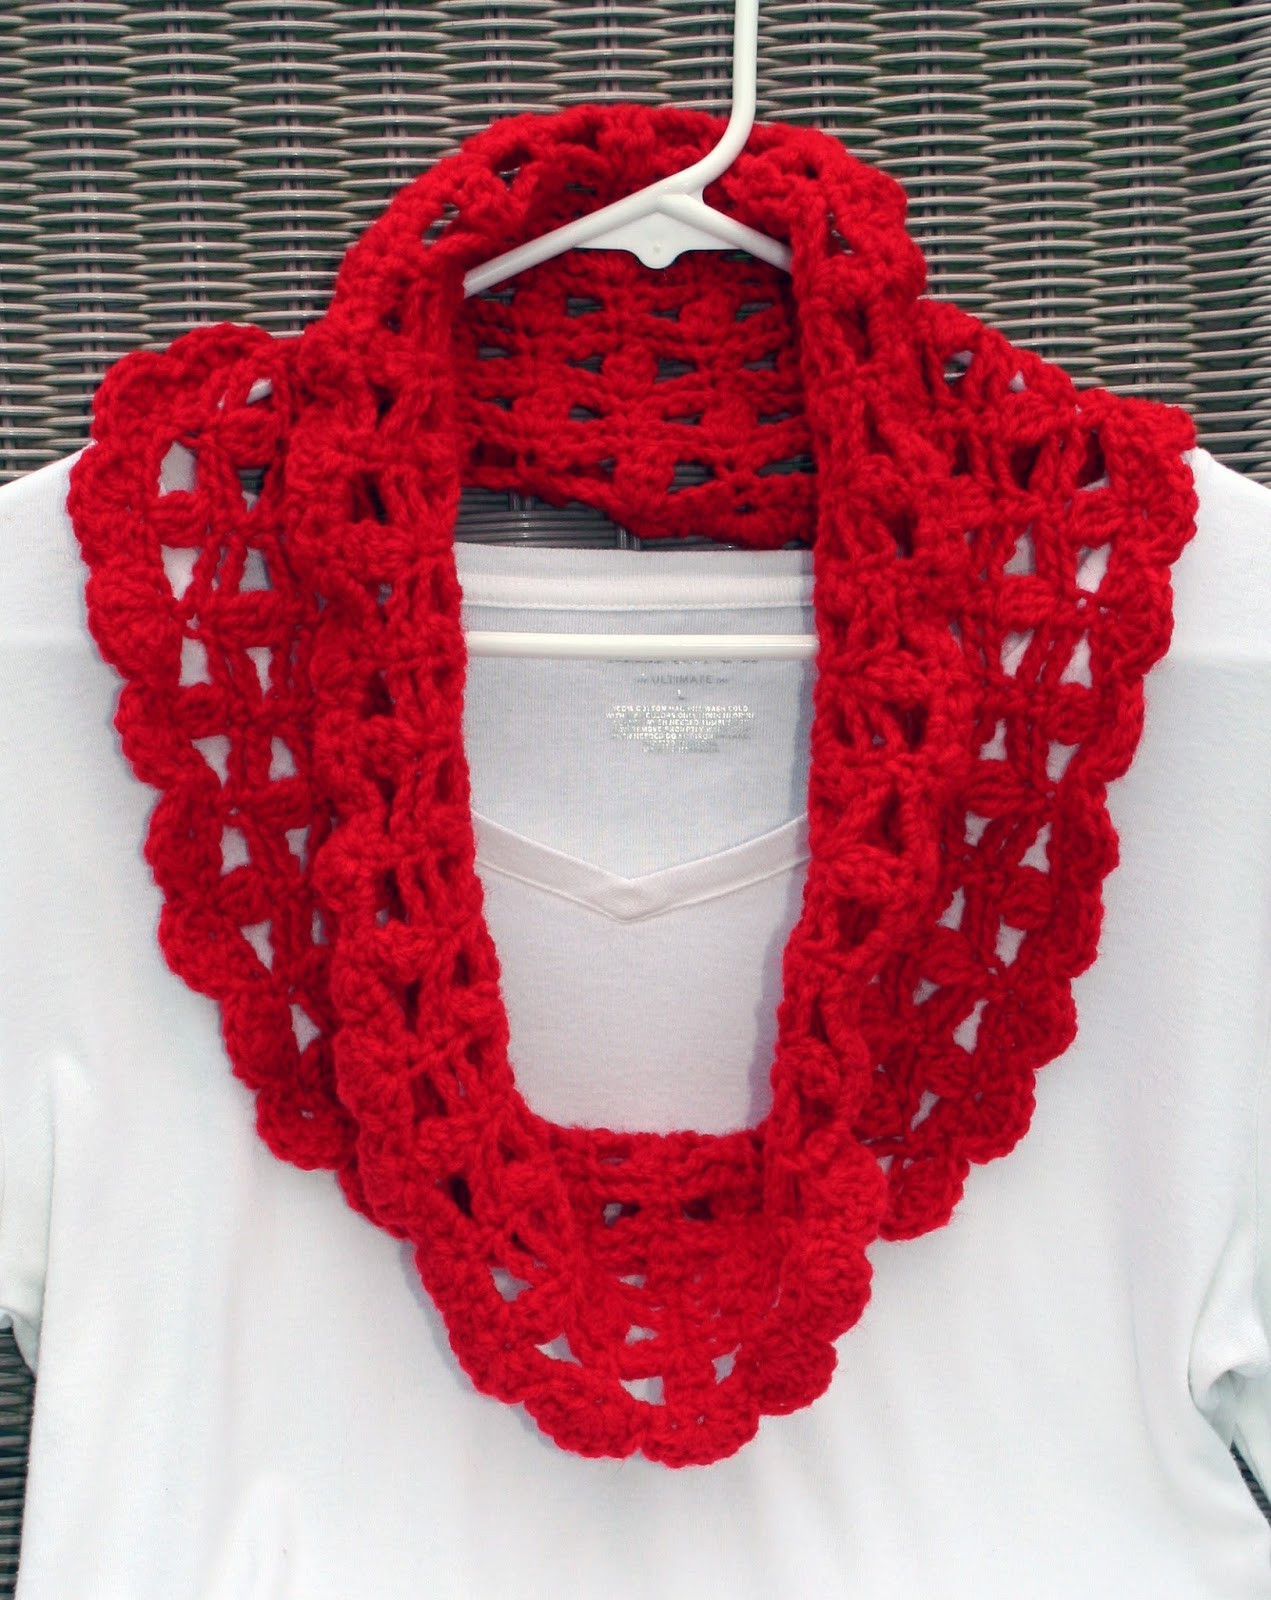 Crochet Cowl Scarf New Tampa Bay Crochet Free Crochet Pattern Lacy Crimson Cowl Of Awesome 42 Pics Crochet Cowl Scarf